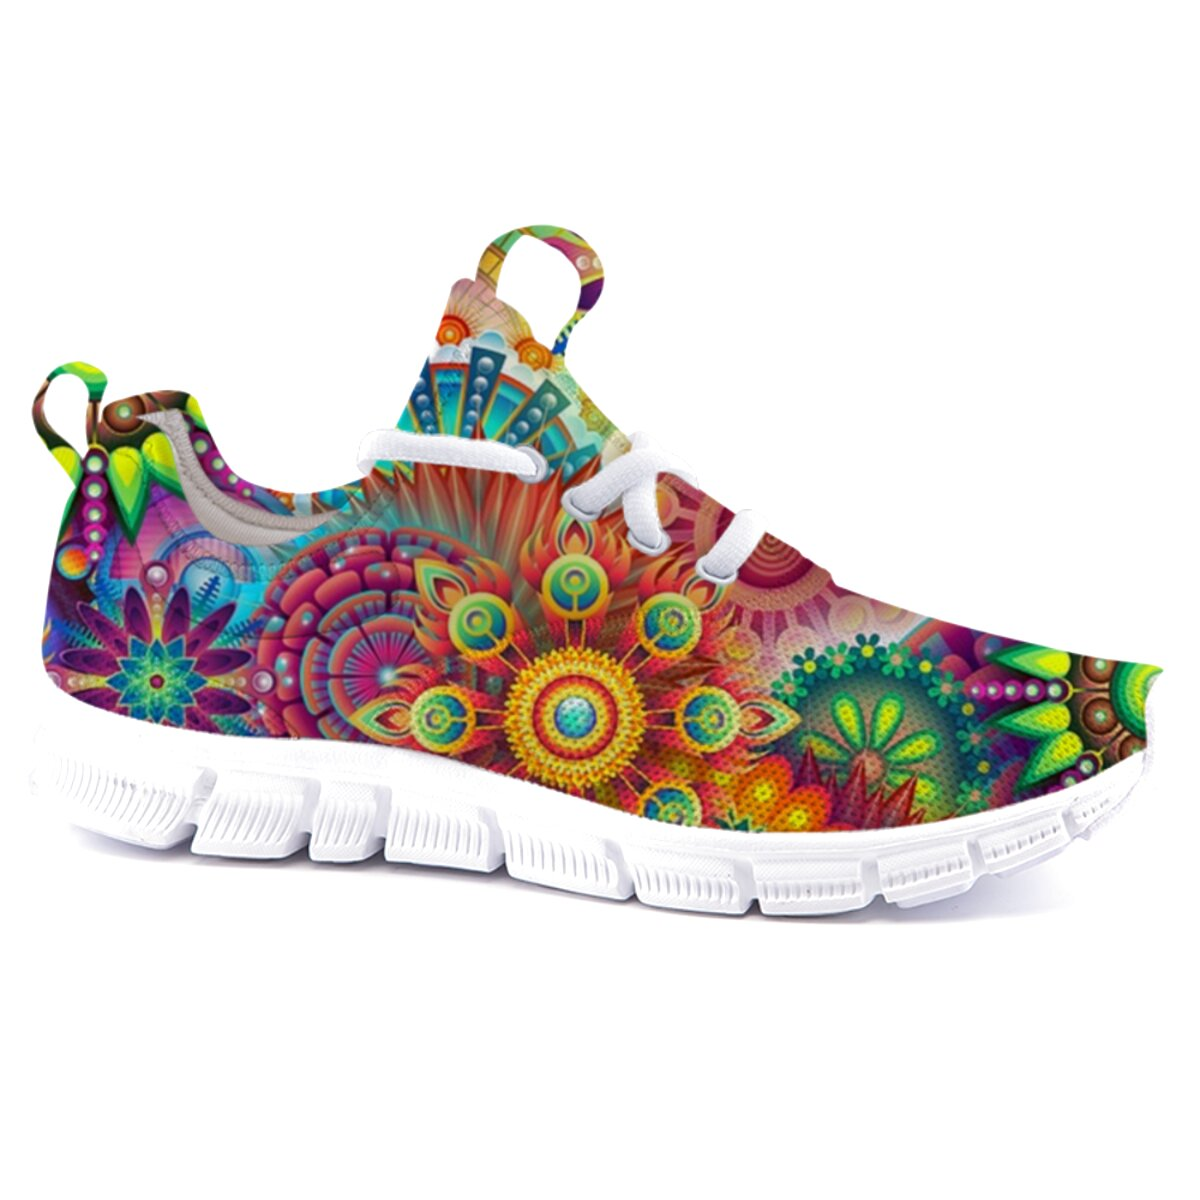 kaleidoscope shoes for sale